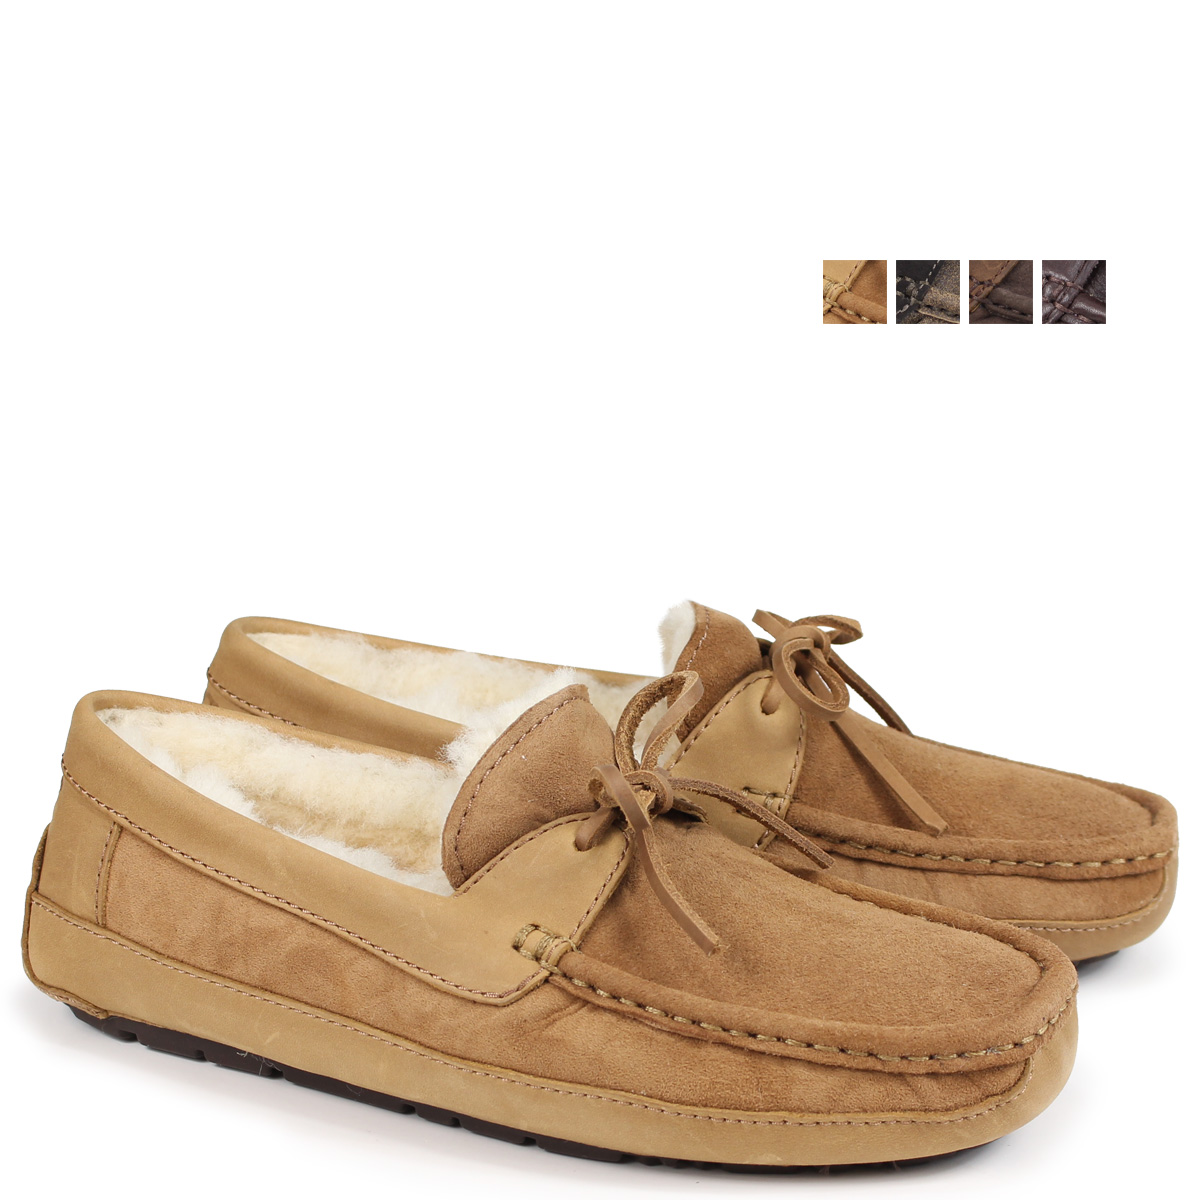 0b1b1e84f25 アグ UGG men Byron moccasins mouton slip-on shoes MENS BYRON 5102 5,102A 5161  1001545 sheepskin